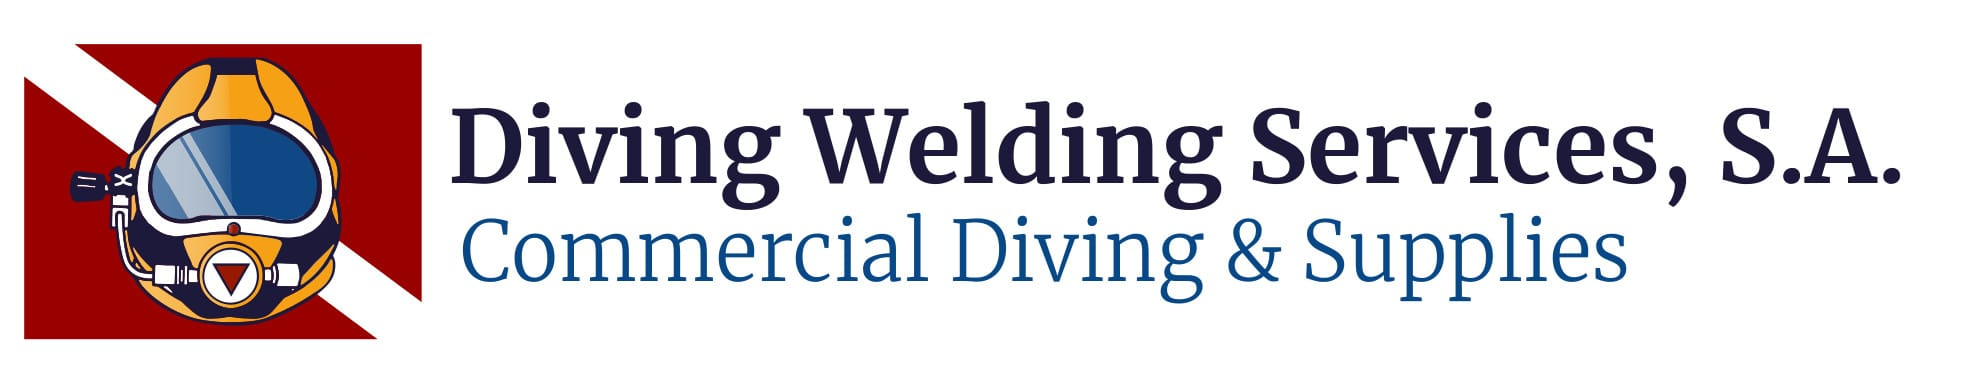 Diving Welding Services